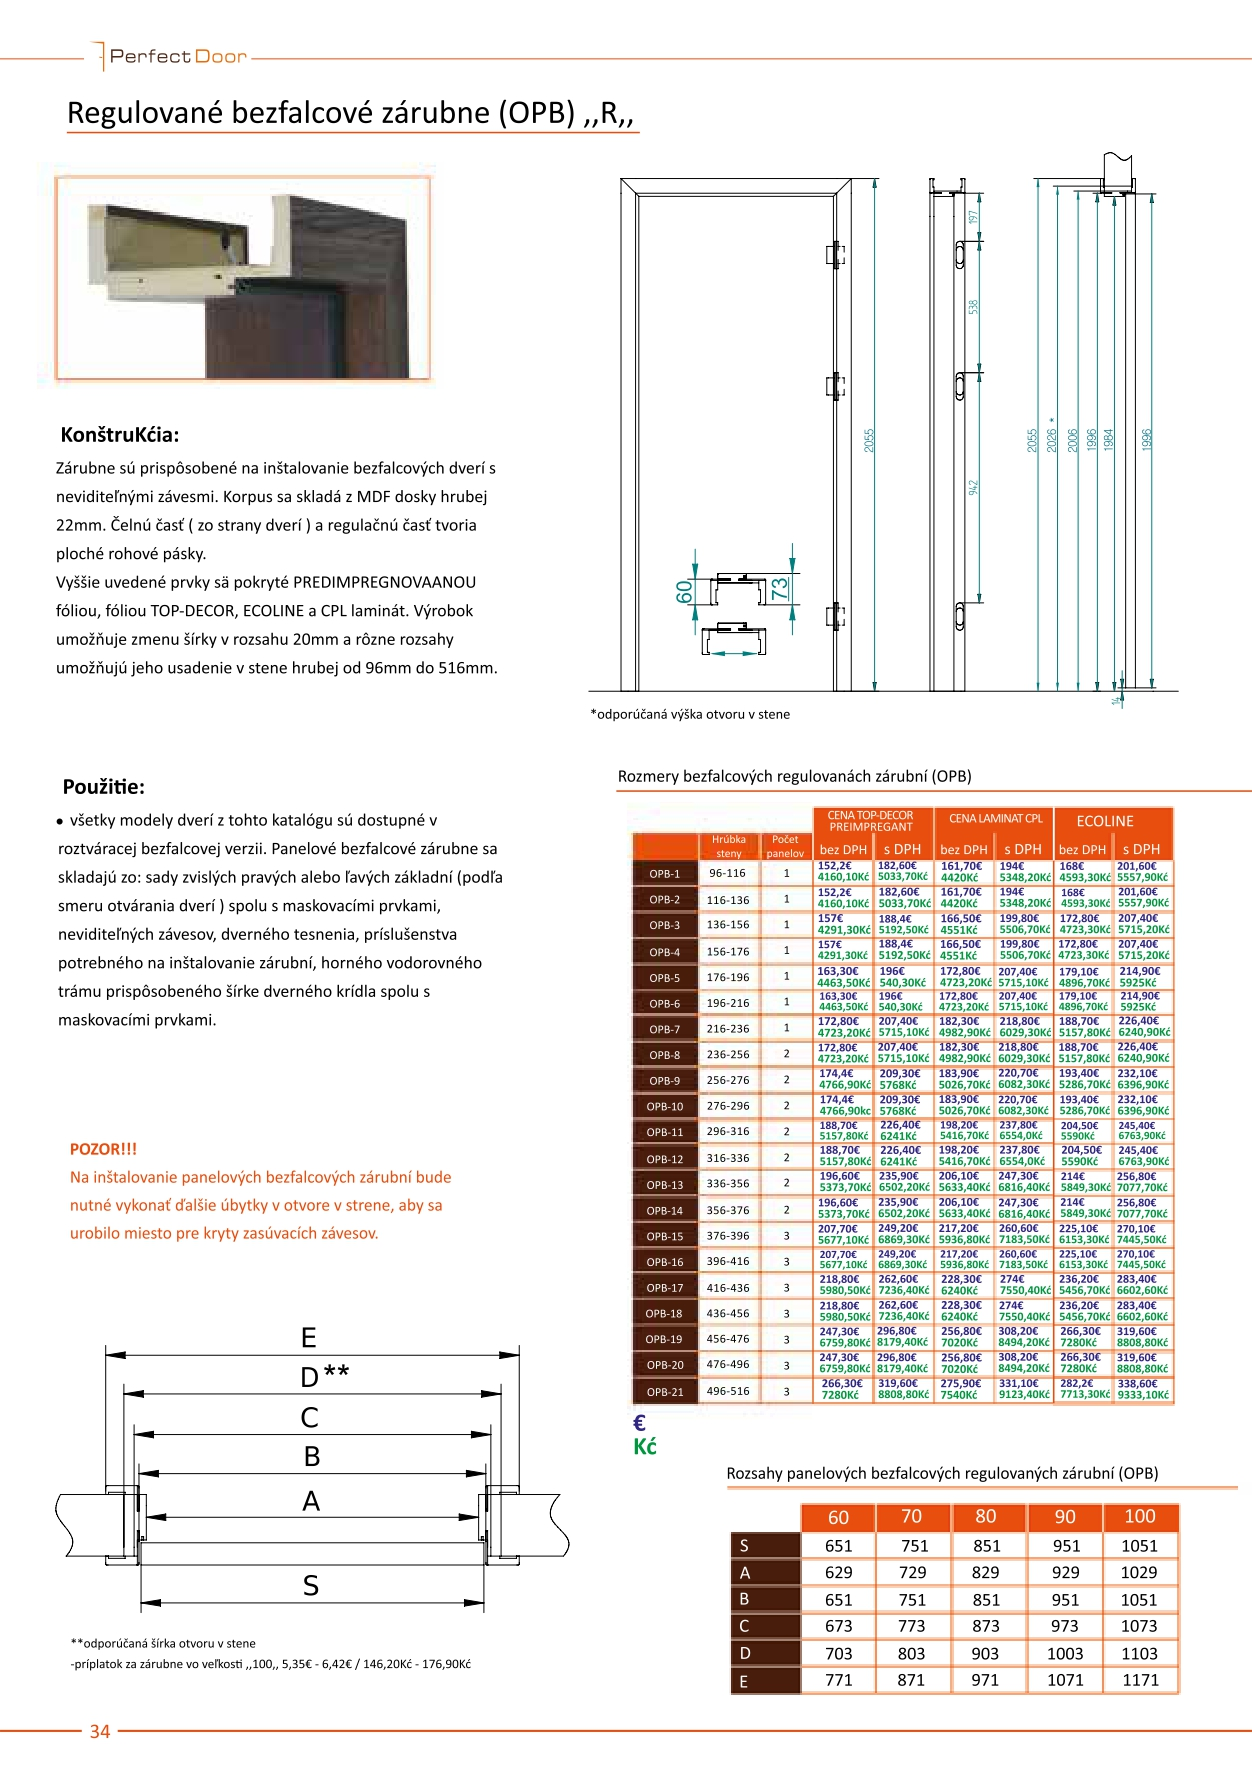 Perfectdoor katalog  1 2019 pages-to-jpg-0034